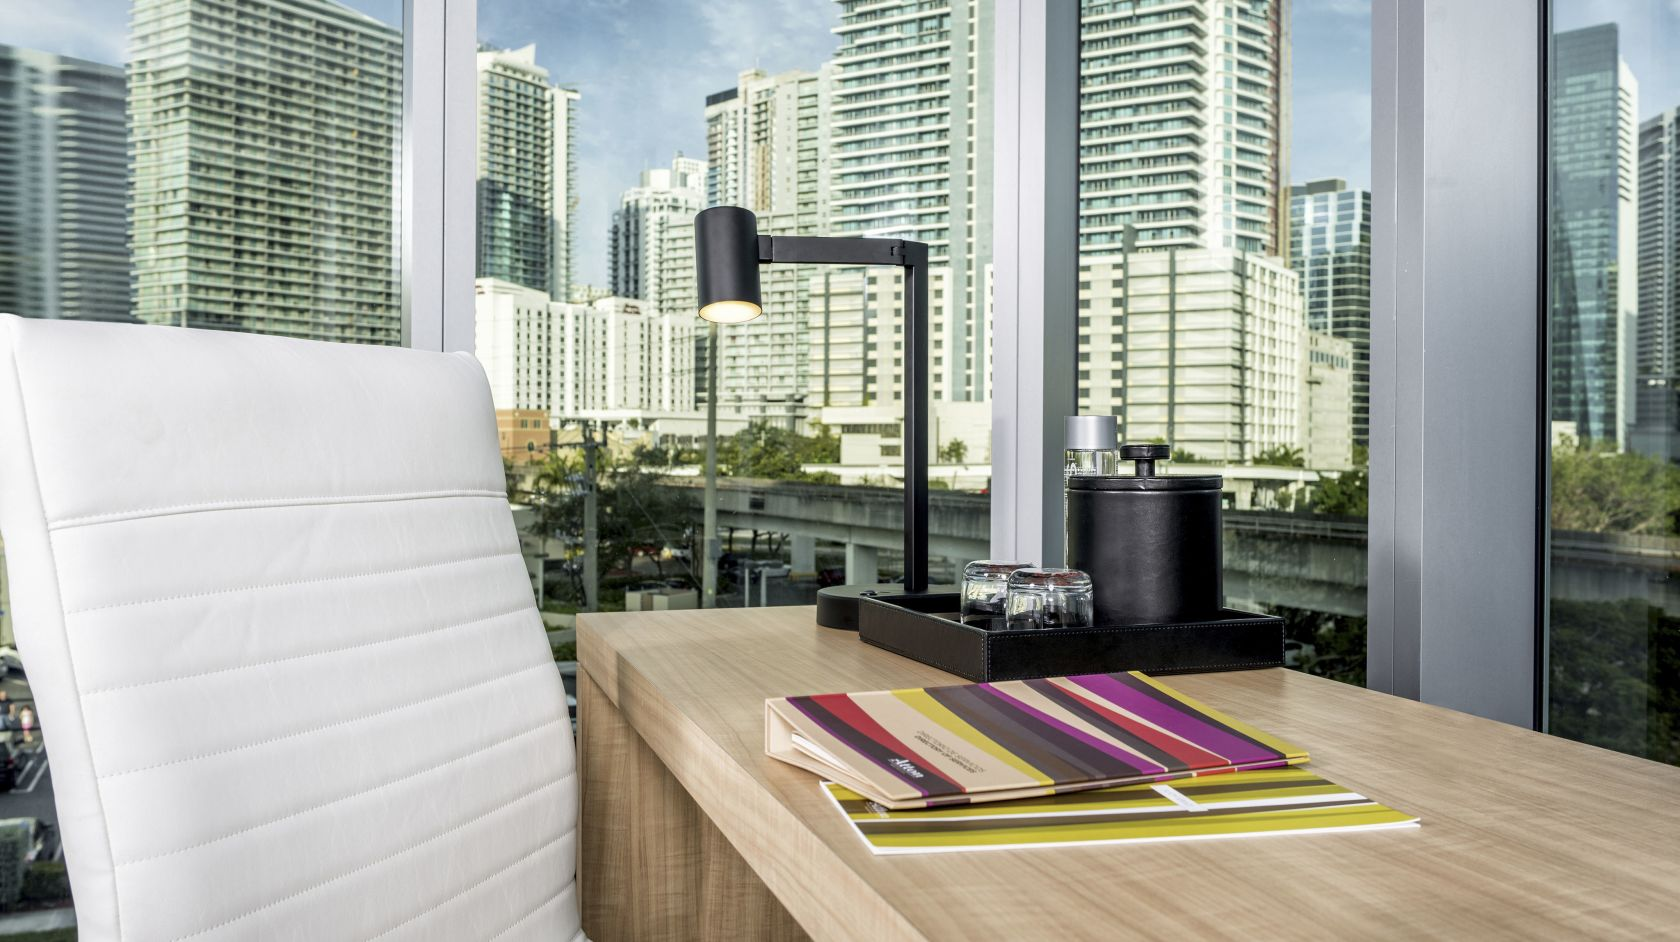 guest room work desk at Novotel Miami Brickell